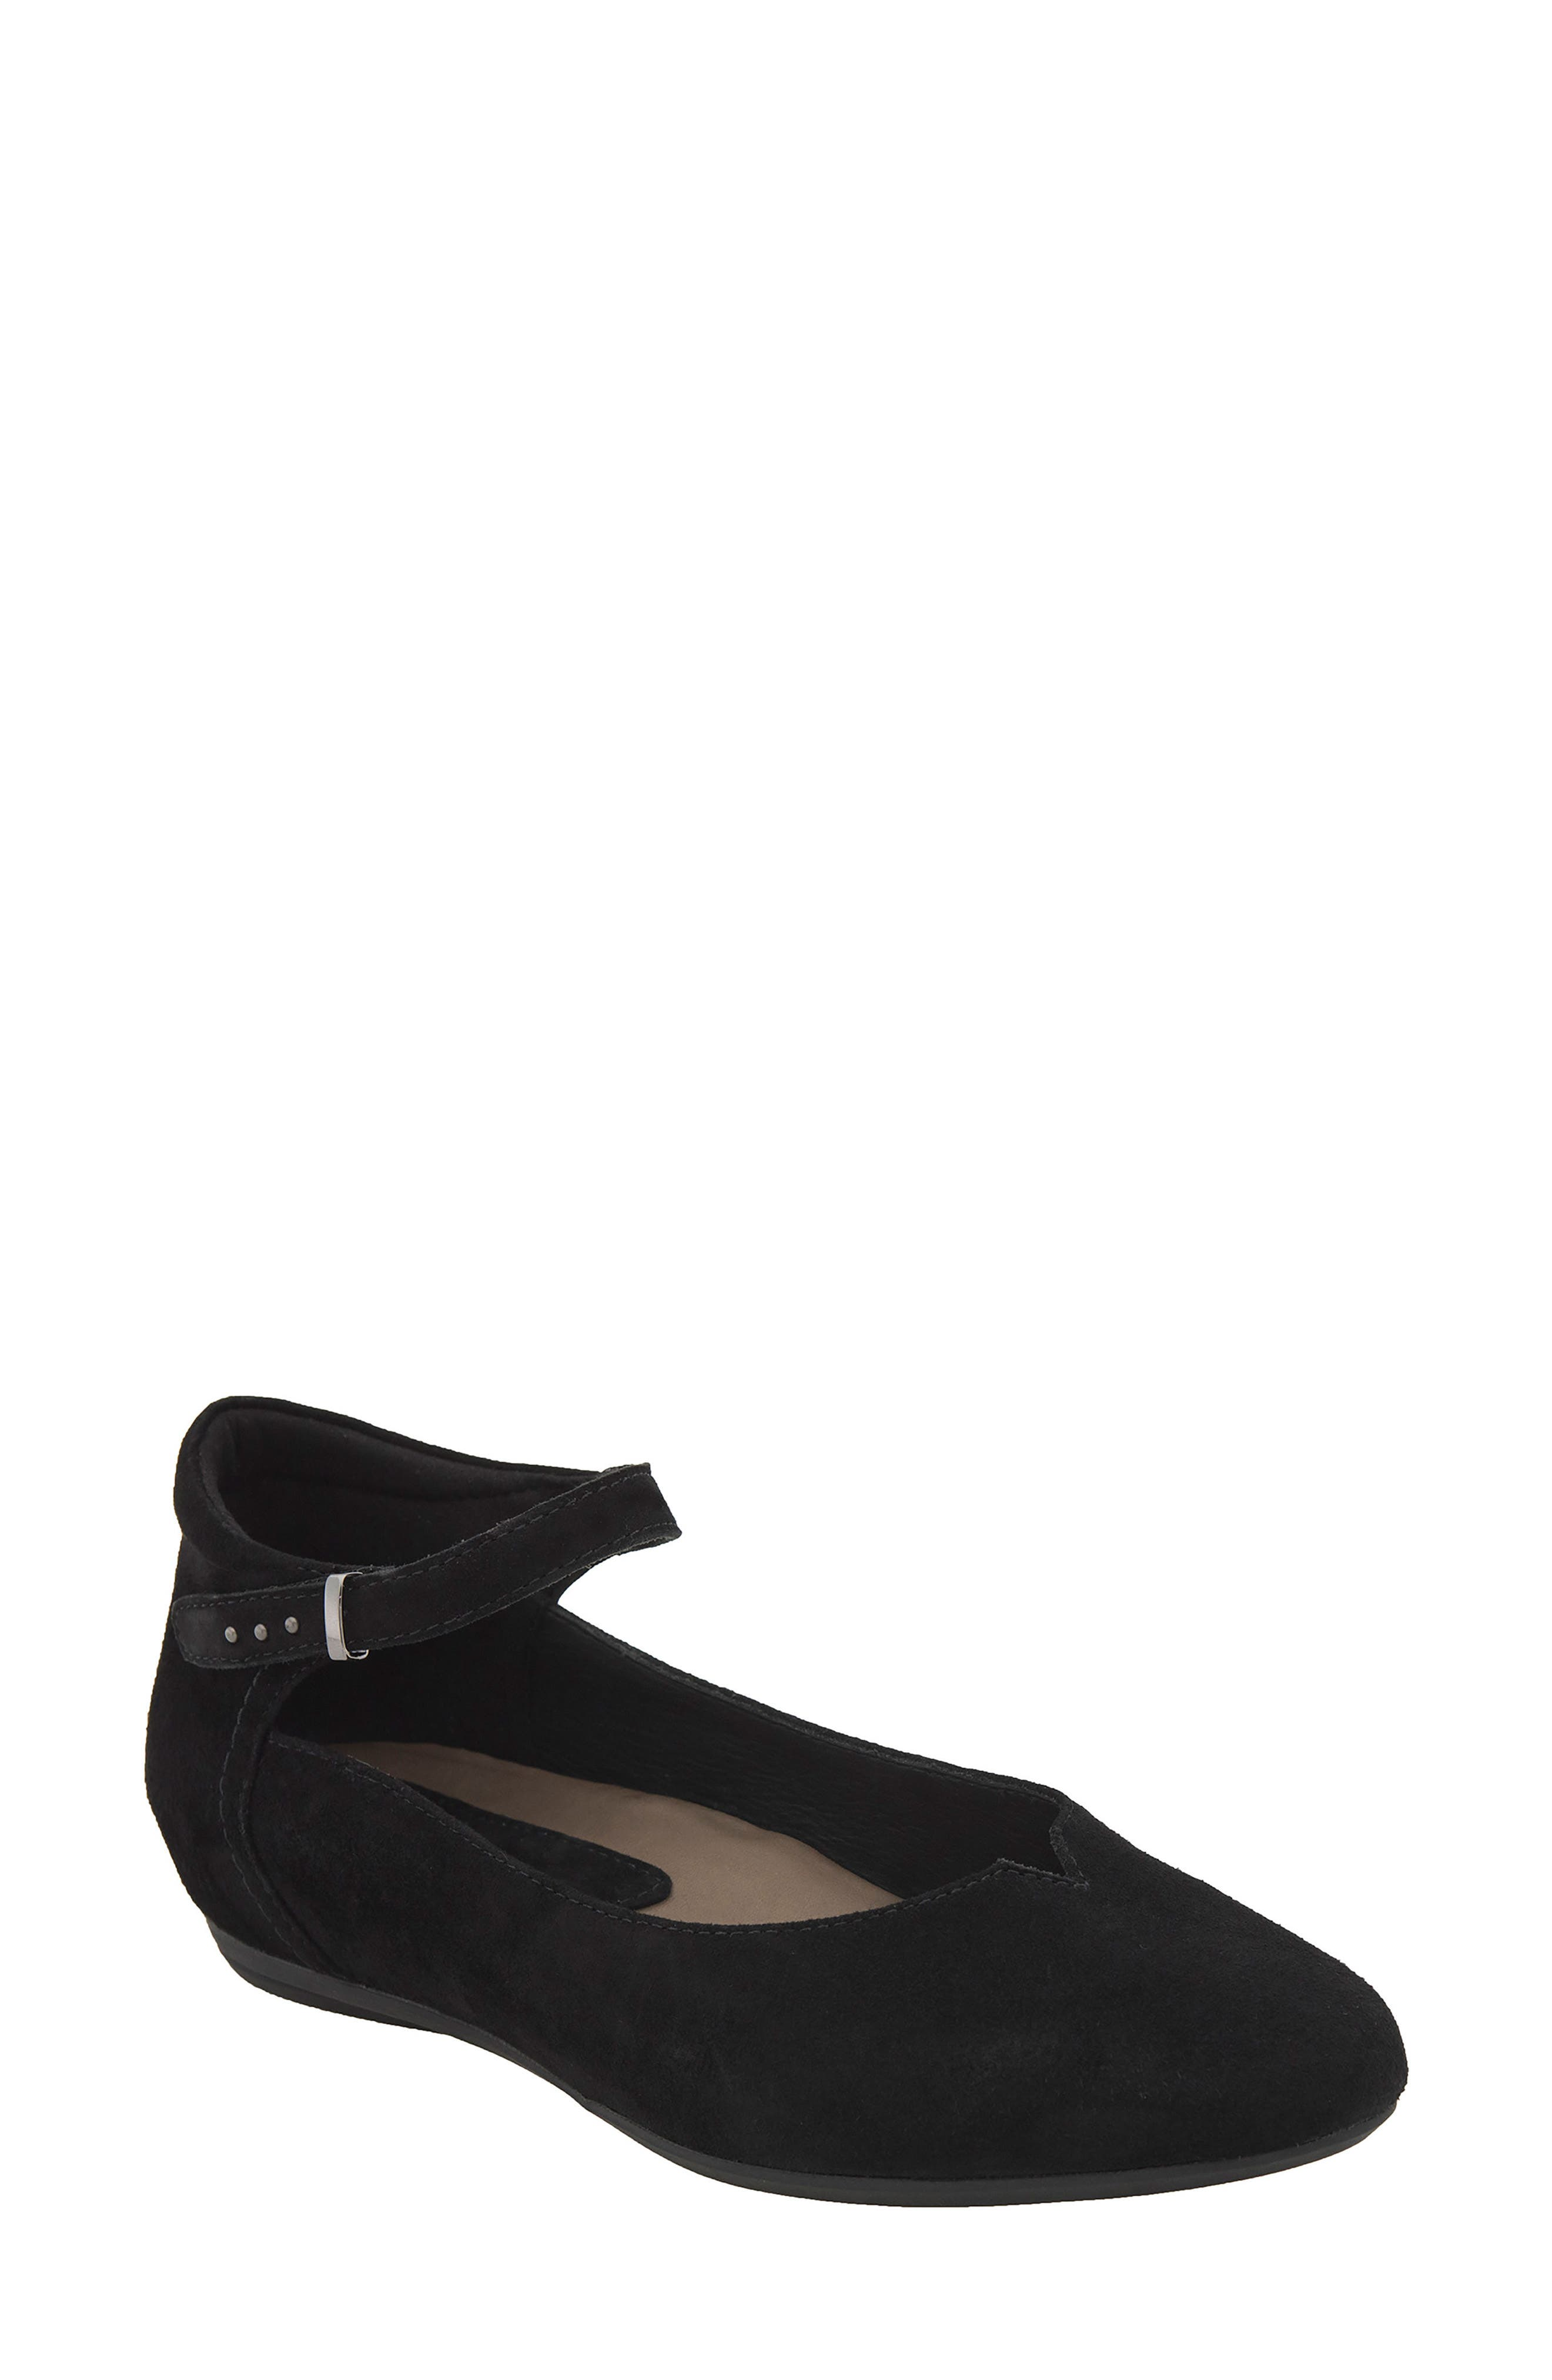 Emery Ankle Strap Flat,                         Main,                         color, Black Suede